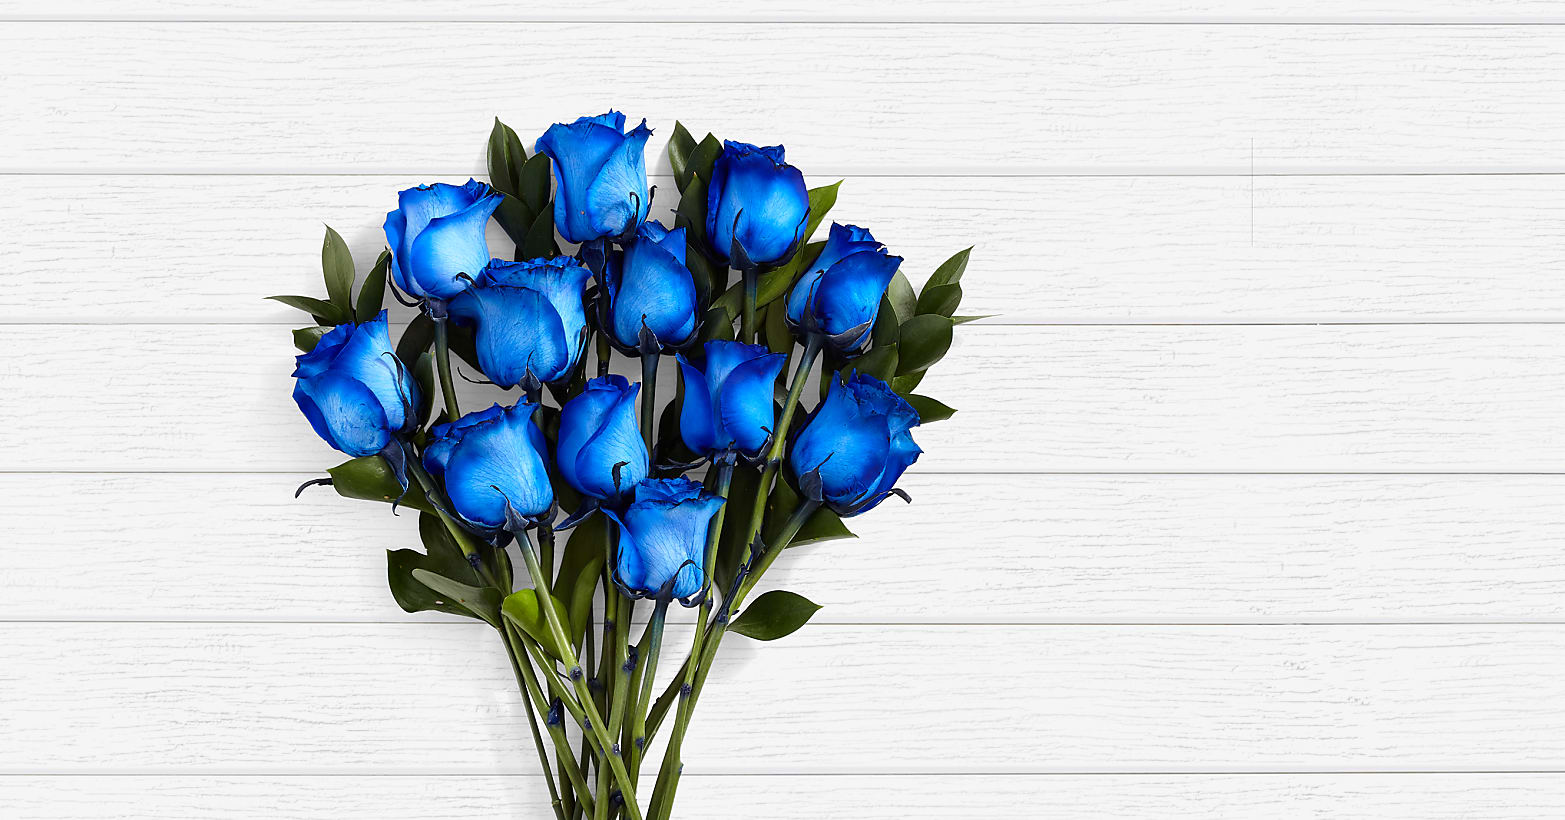 Blue Moon Roses - 12 Long Stemmed Blue Dyed Roses - Image 1 Of 3